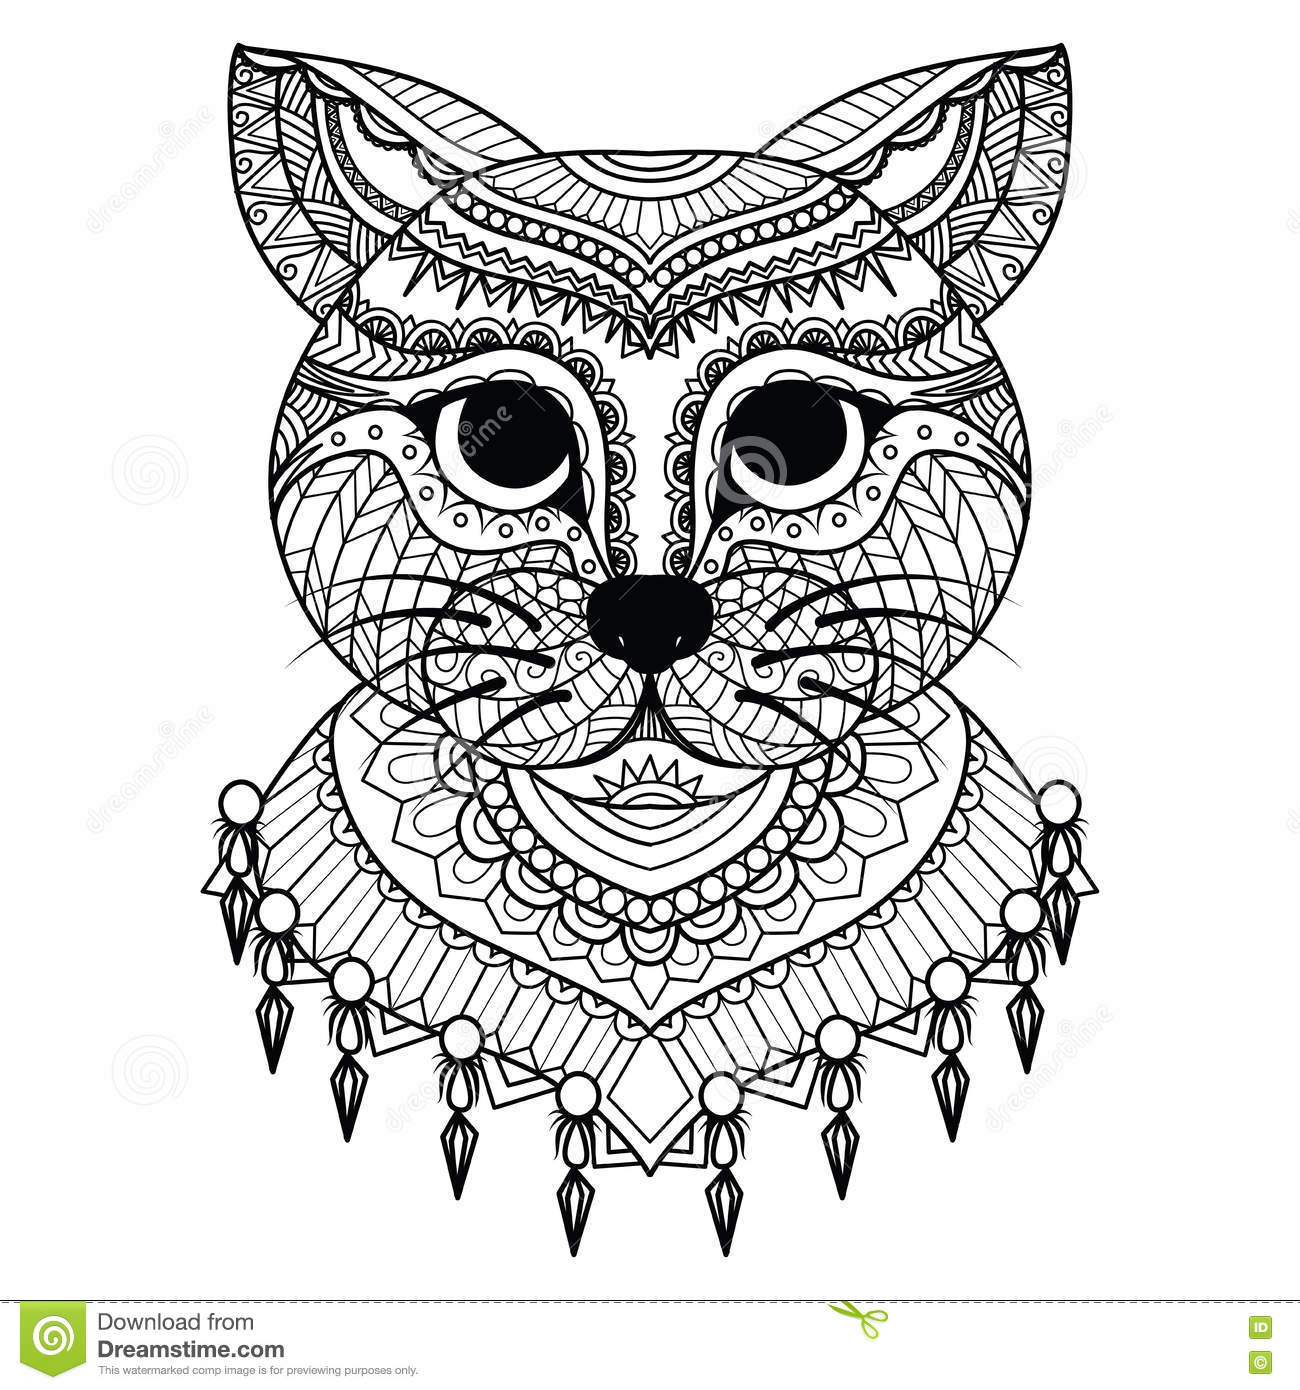 Clean Lines Doodle Art Of Cute Cat For Coloring Book For